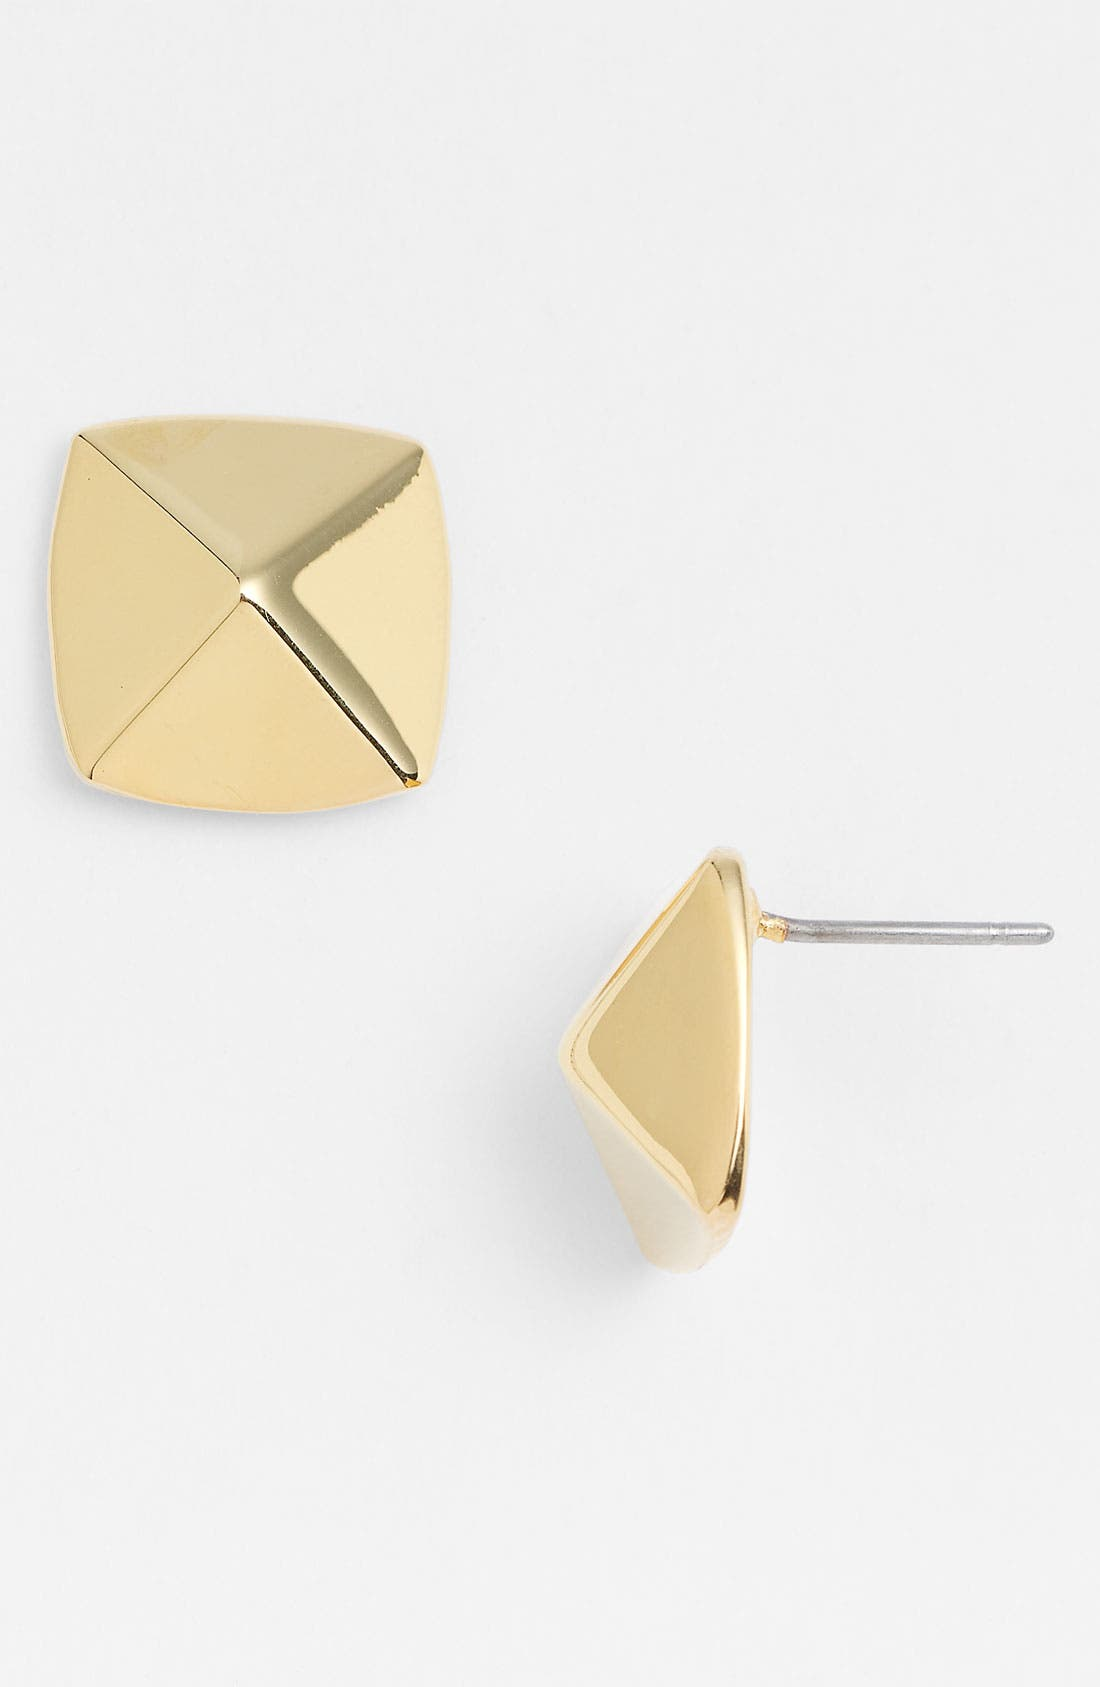 Main Image - Vince Camuto 'Basics' Small Pyramid Stud Earrings